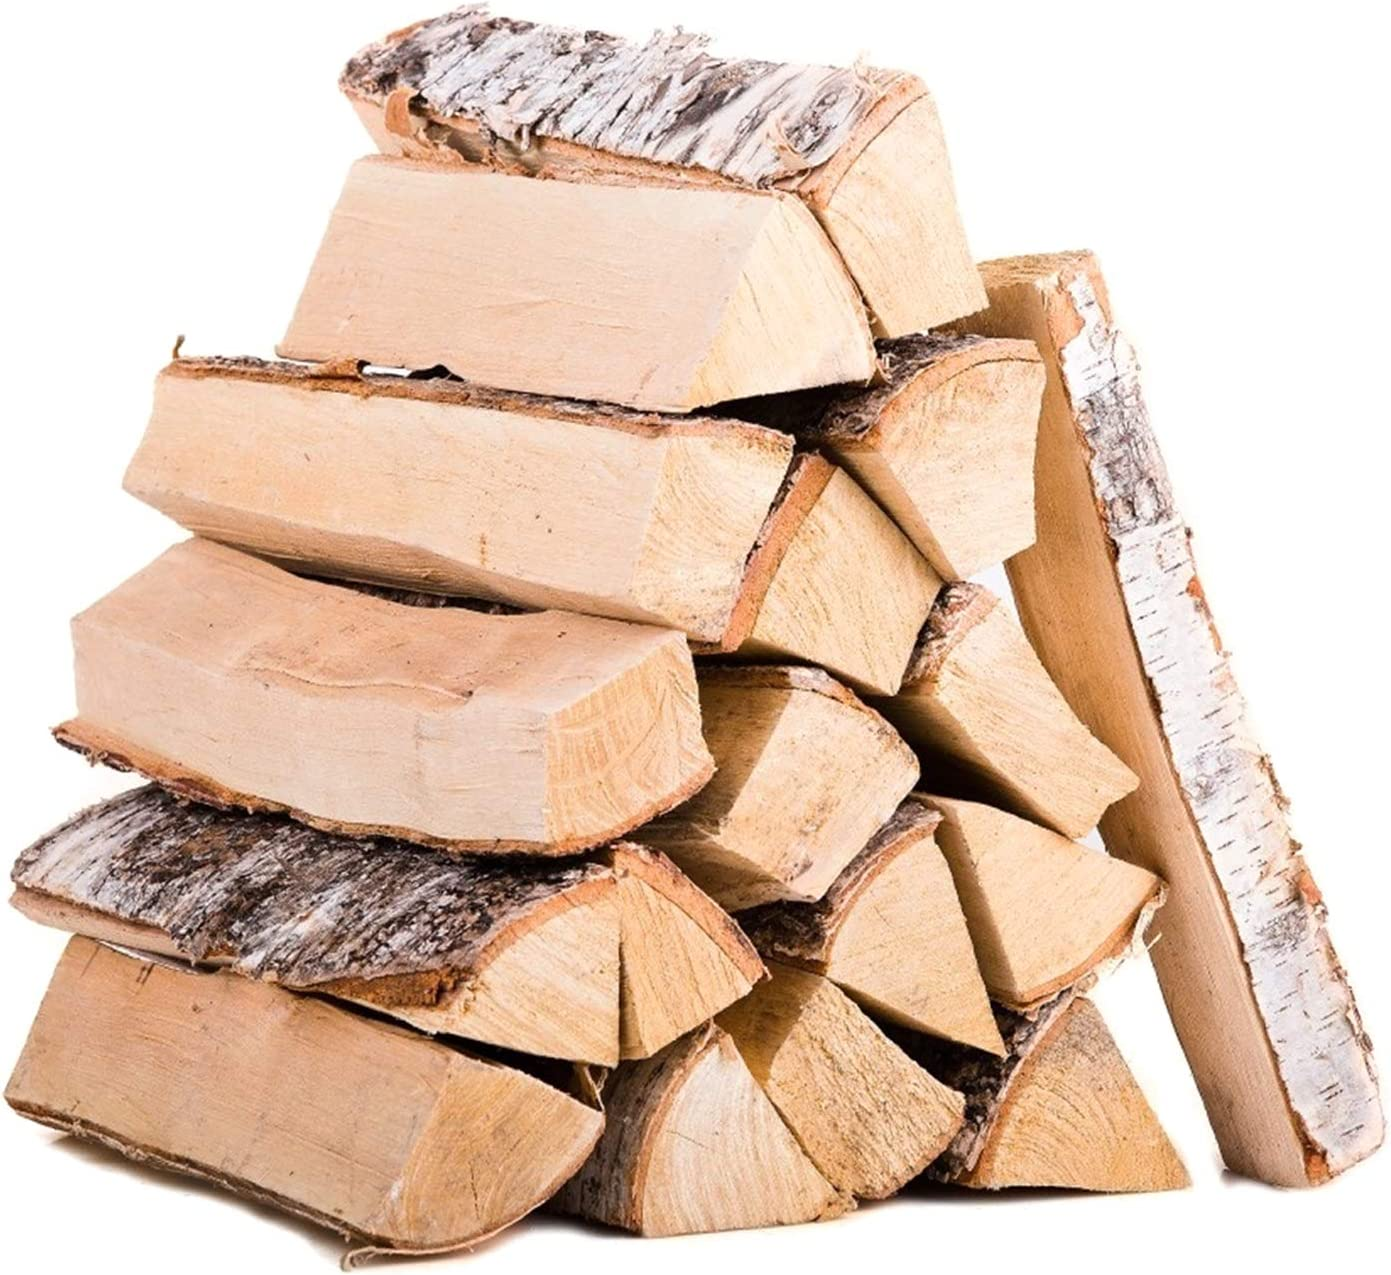 11lbs Apple Firewood Cooking Wood Log- 8.3''Easy-lighting Wood Chunks in Good Size Natural Dried Barbecue Large Cut Chips with Cardboard Box for Fireplace Campfire Firepit Smoking Cooking Grilling BBQ